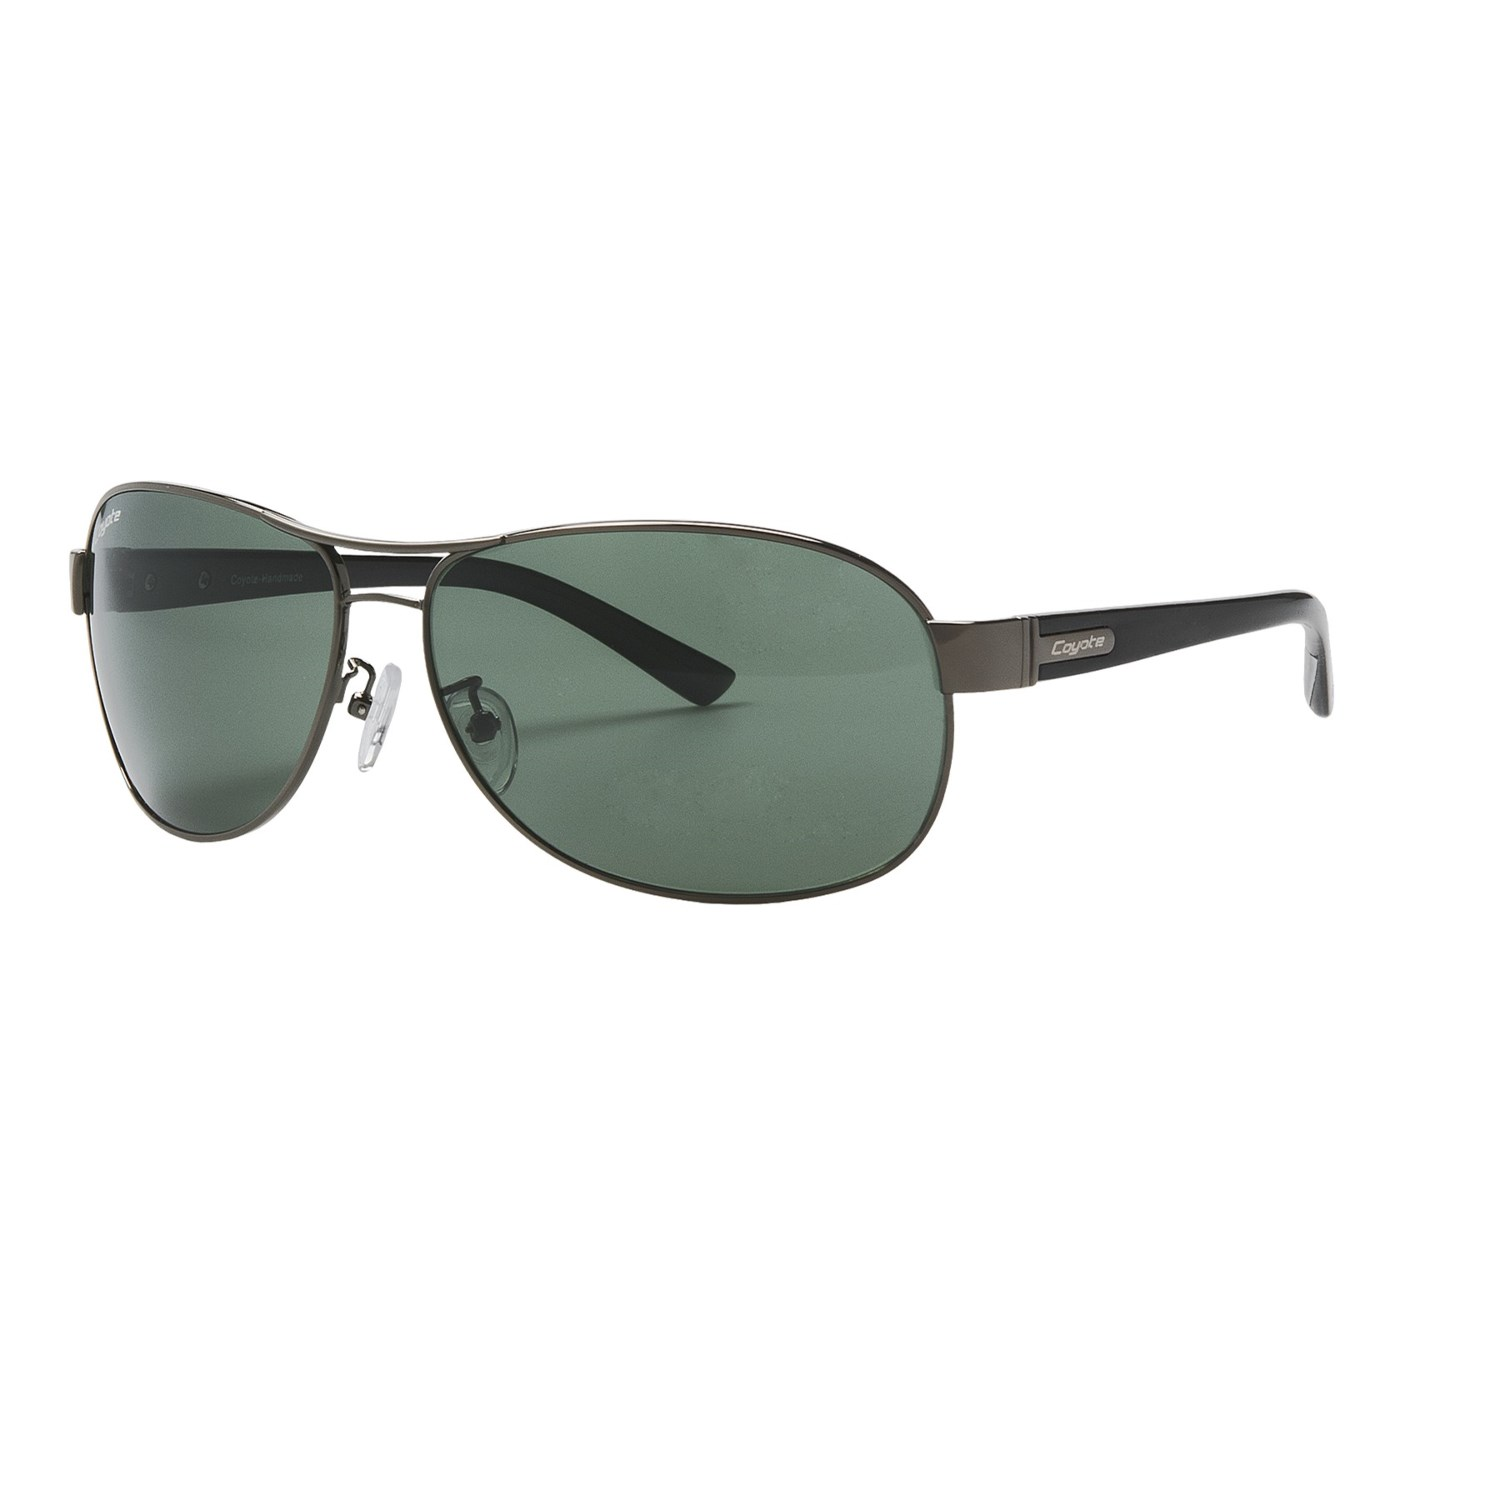 polarized glass Affordable polarized & fashion sunglasses with uva/uvb protection for men and women great quality and super savings.